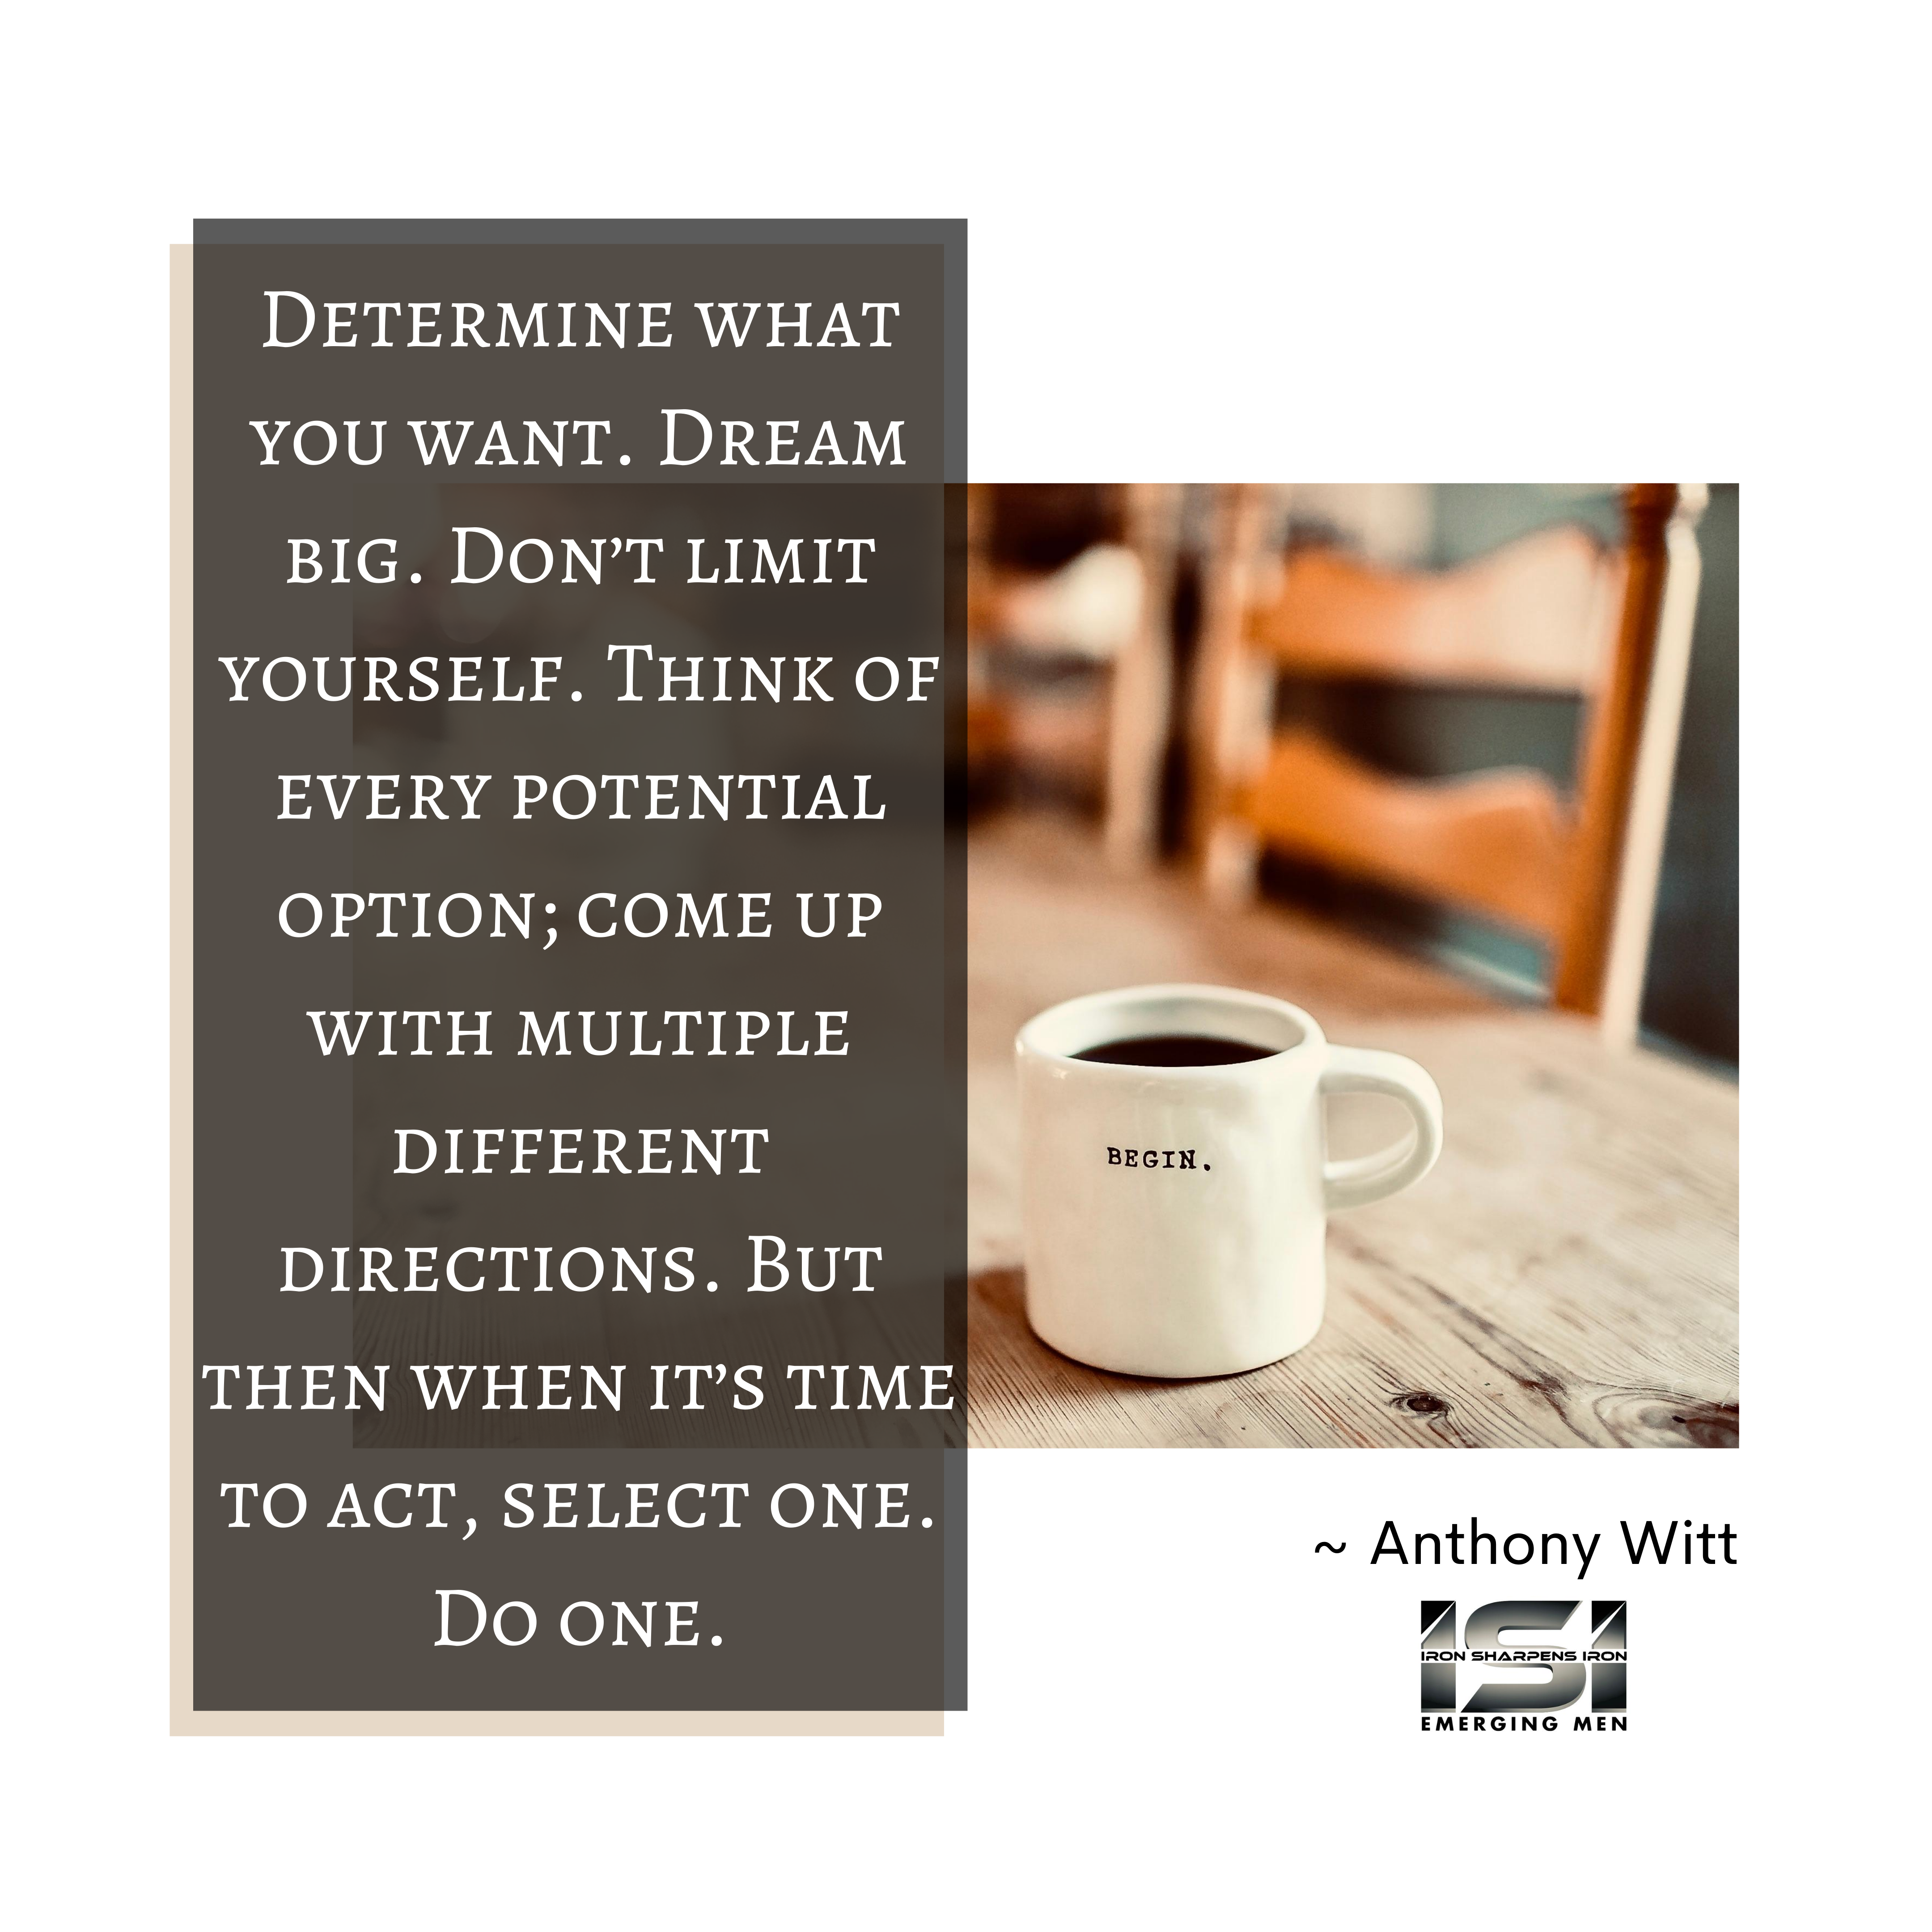 Determine what you want. Dream big. Don't limit yourself. Think of every potential option; come up with multiple different directions. But then when it's time to act, select one. Do one.